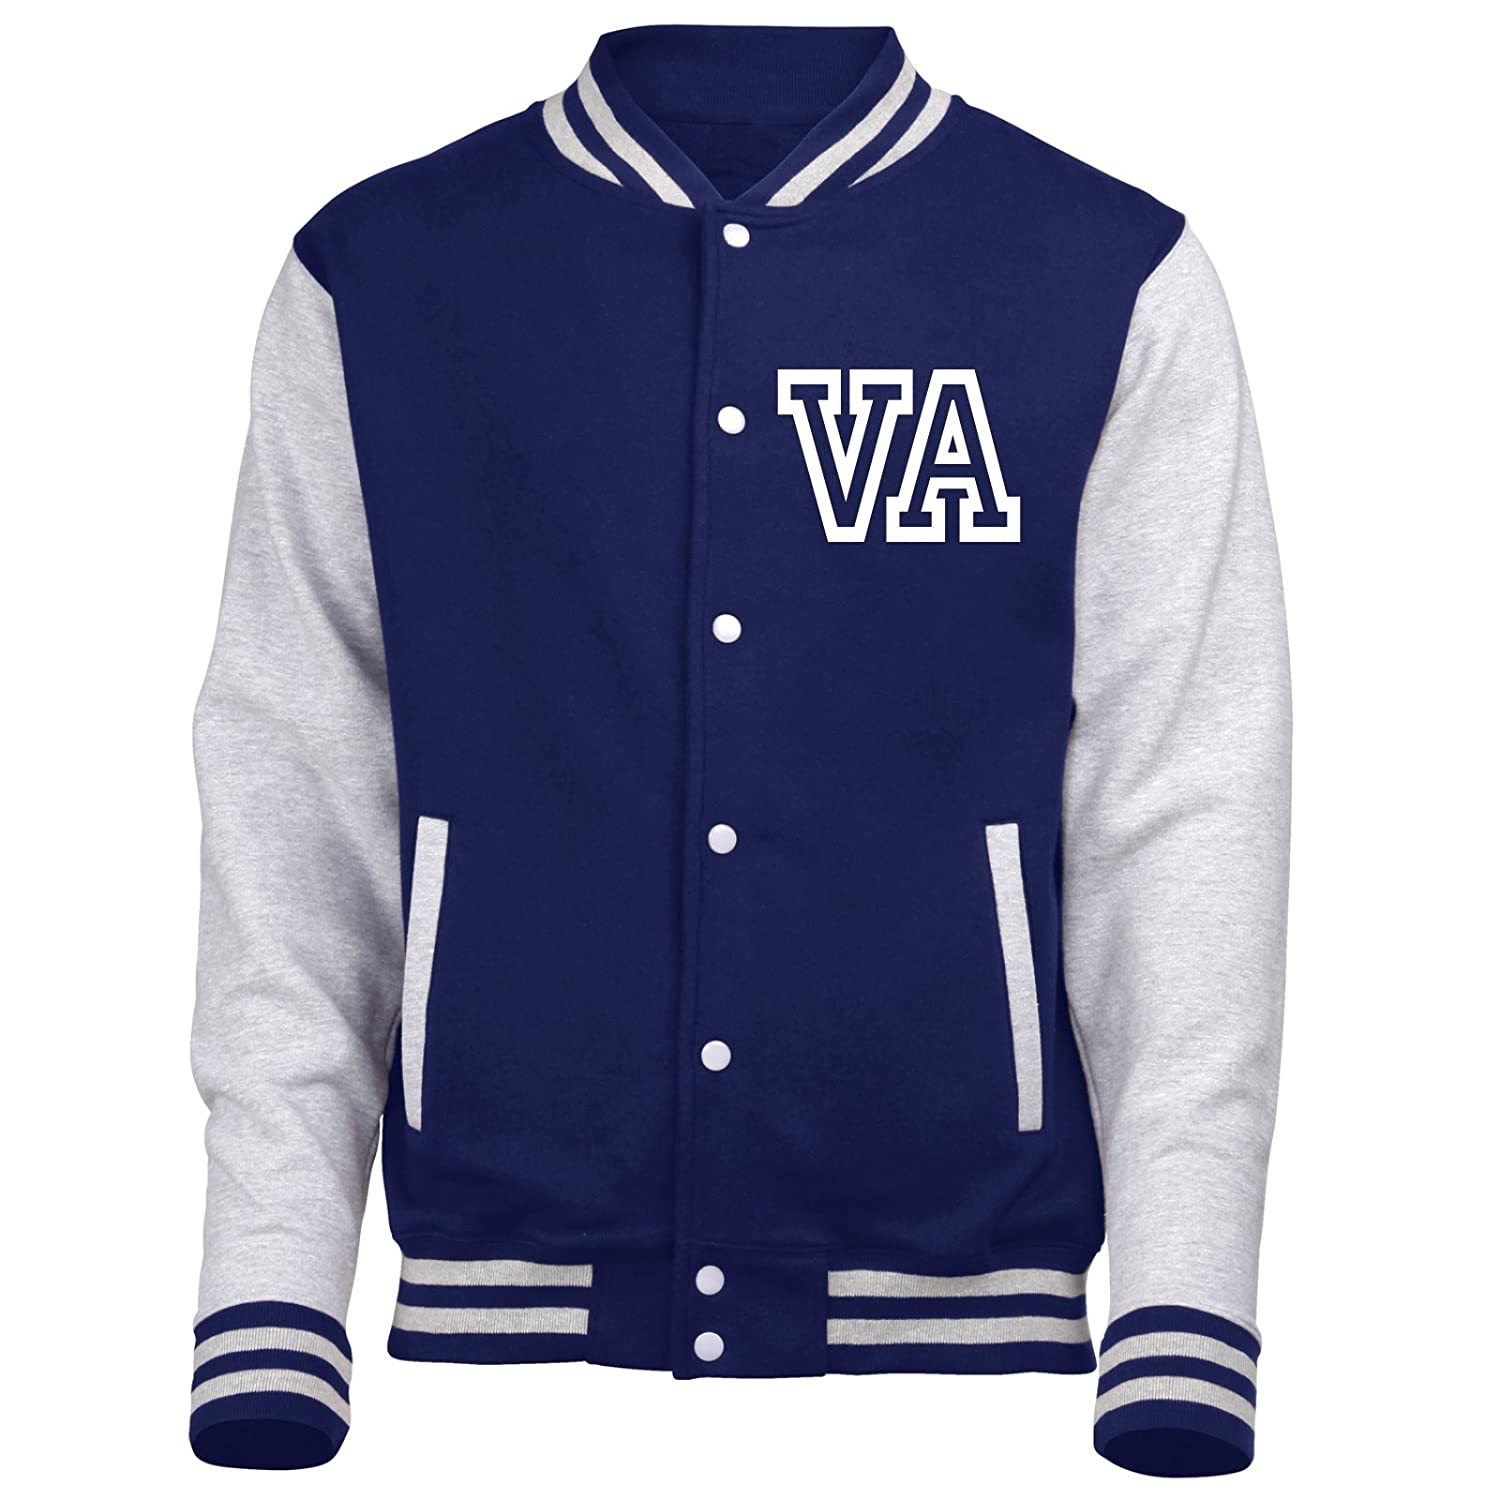 KIDS VARSITY JACKET WITH FRONT INITIALS (Oxford Navy/Heather Grey) Oxford Navy / Heather Grey Large - Age 9/11 Fonfella